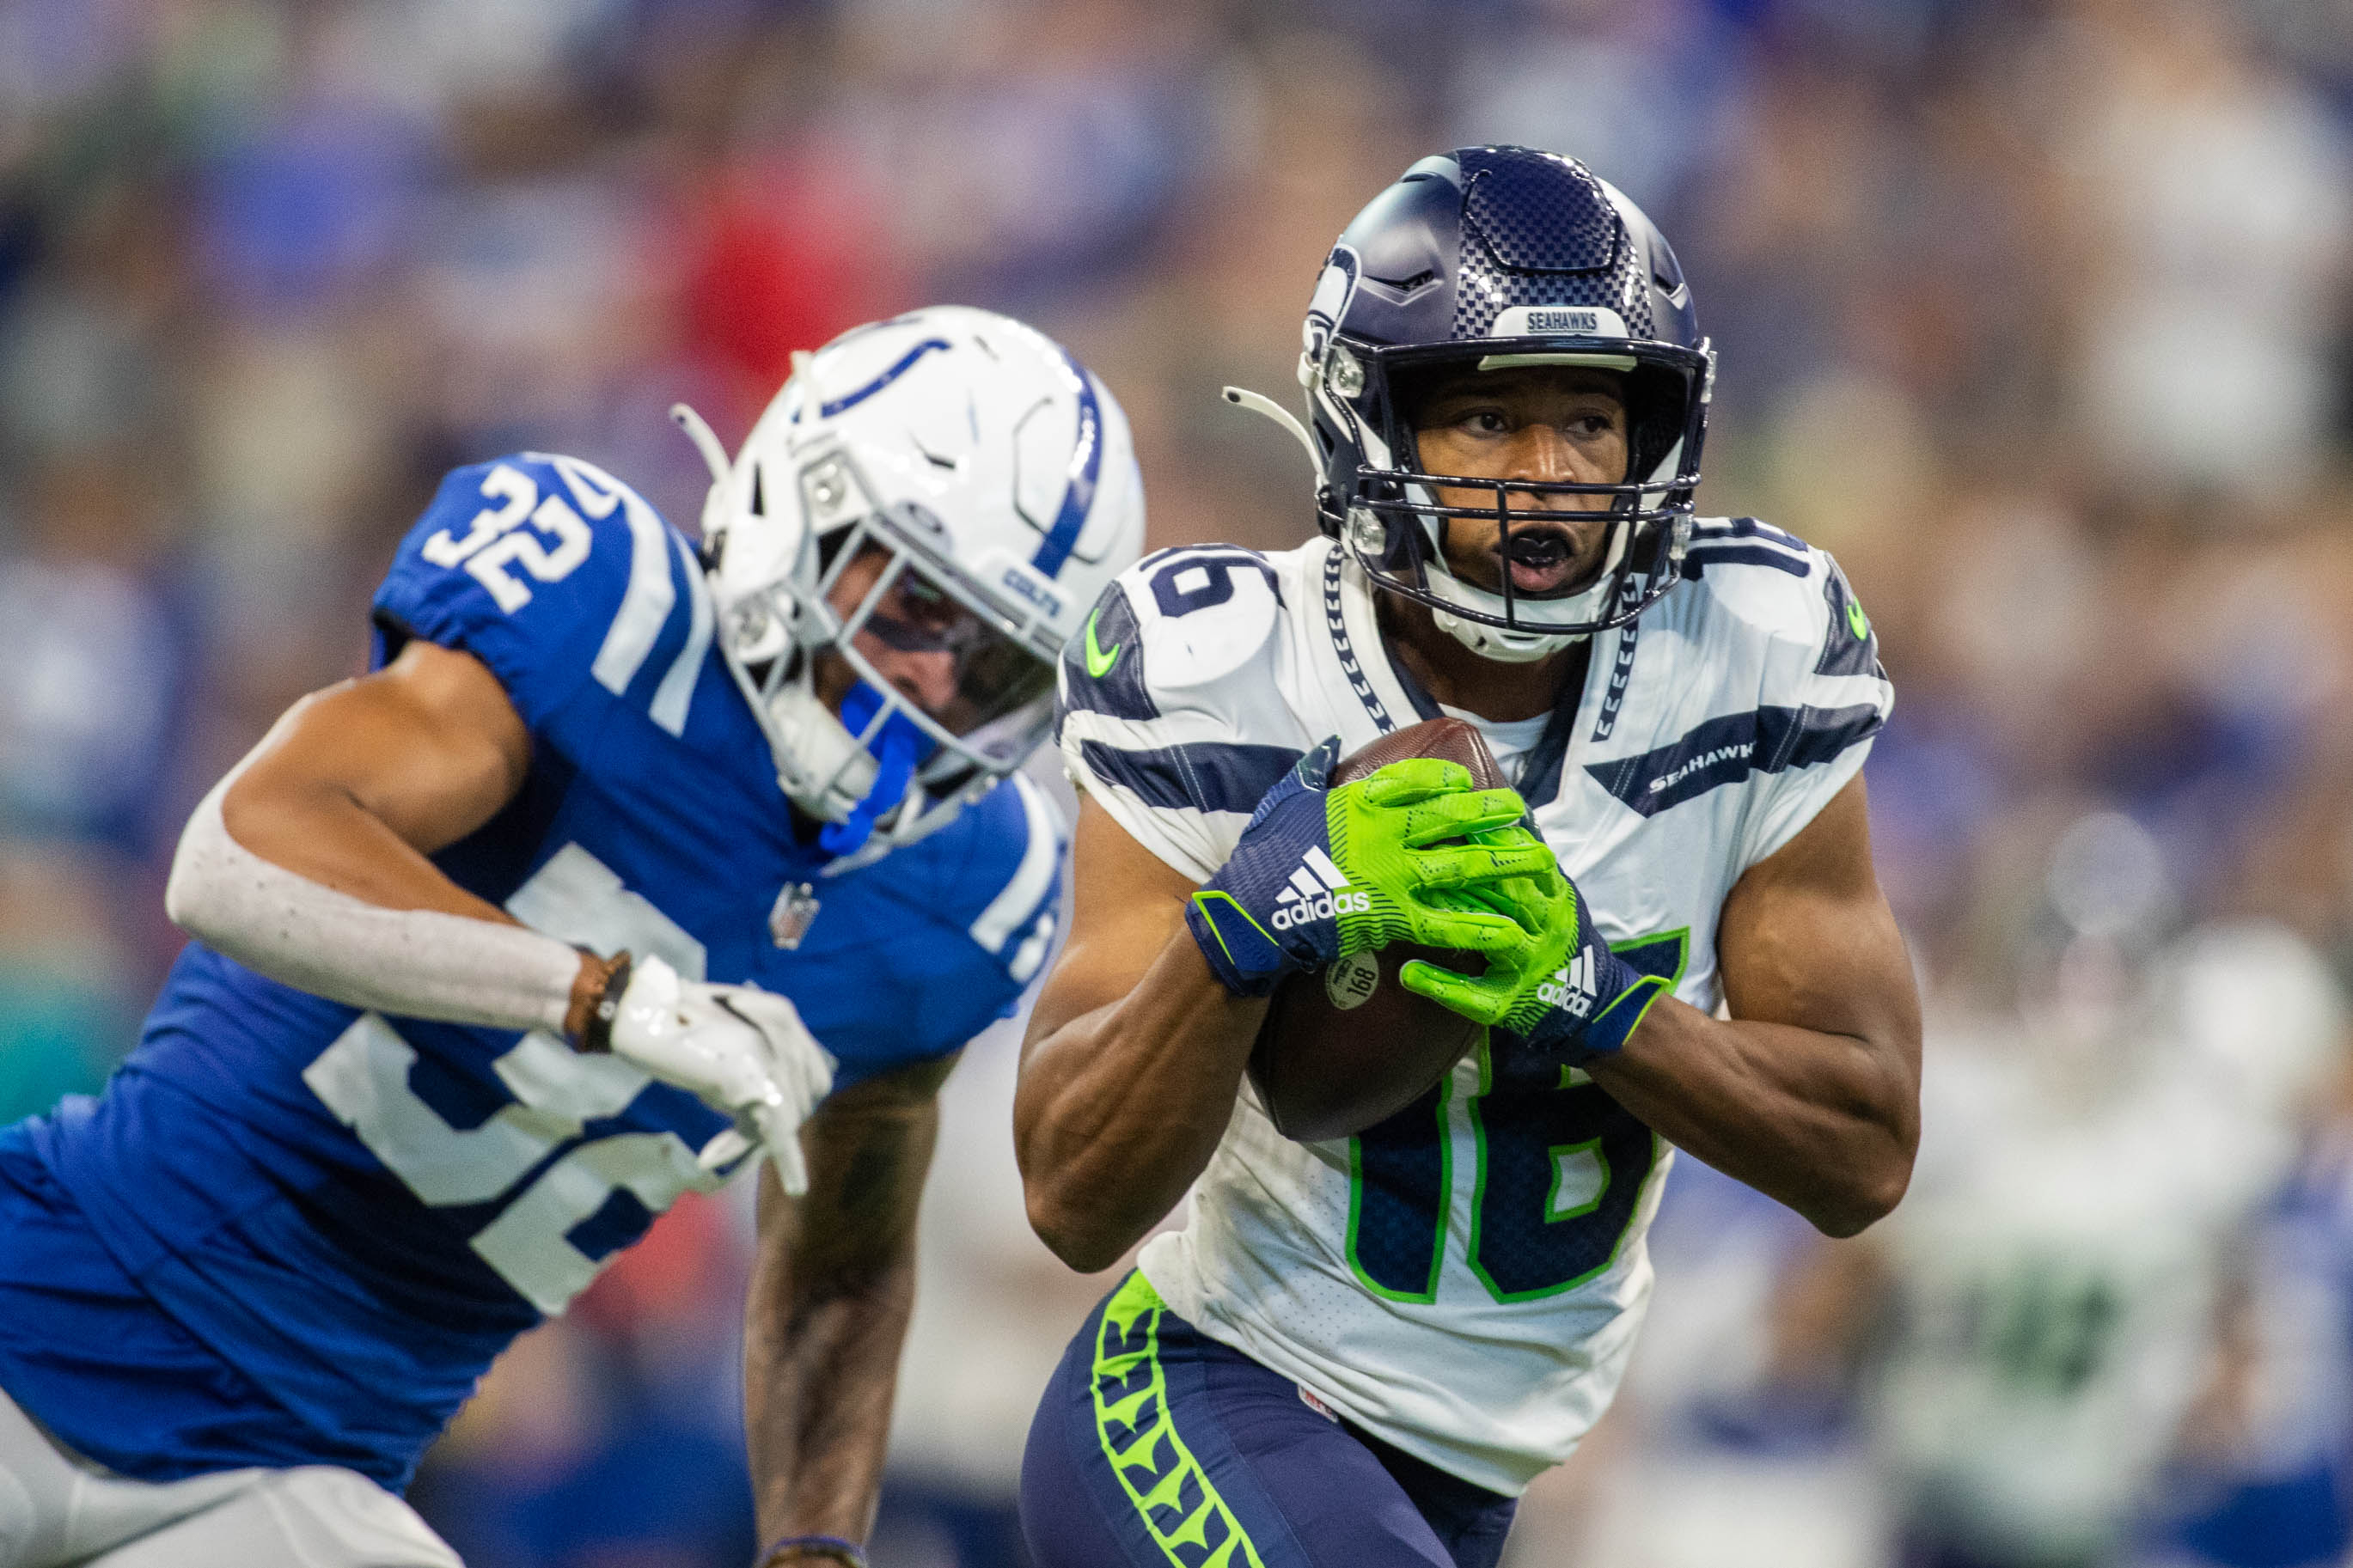 Seattle Seahawks wide receiver Tyler Lockett (16) catches the ball in the second quarter against the Indianapolis Colts at Lucas Oil Stadium.